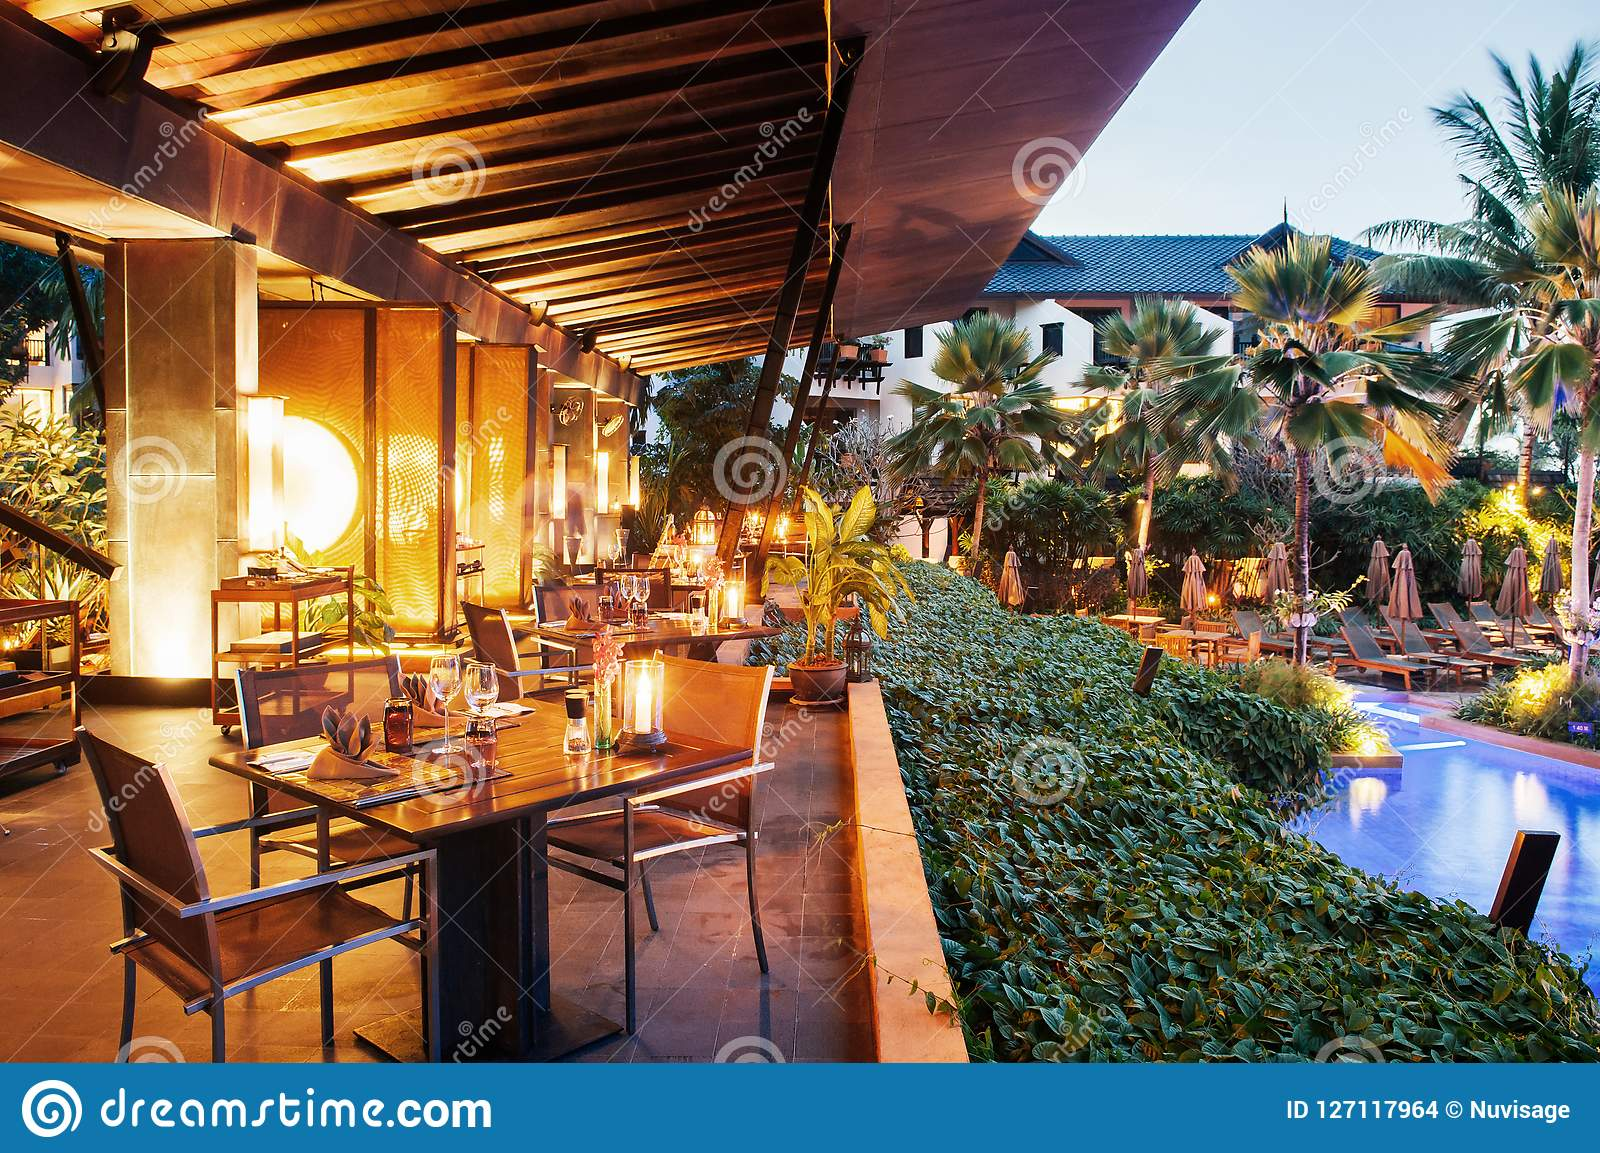 Luxury Resort Restaurant Dinner Table And Seat By The Pool In Tr Editorial Stock Image Image Of Holiday Cloudscape 127117964